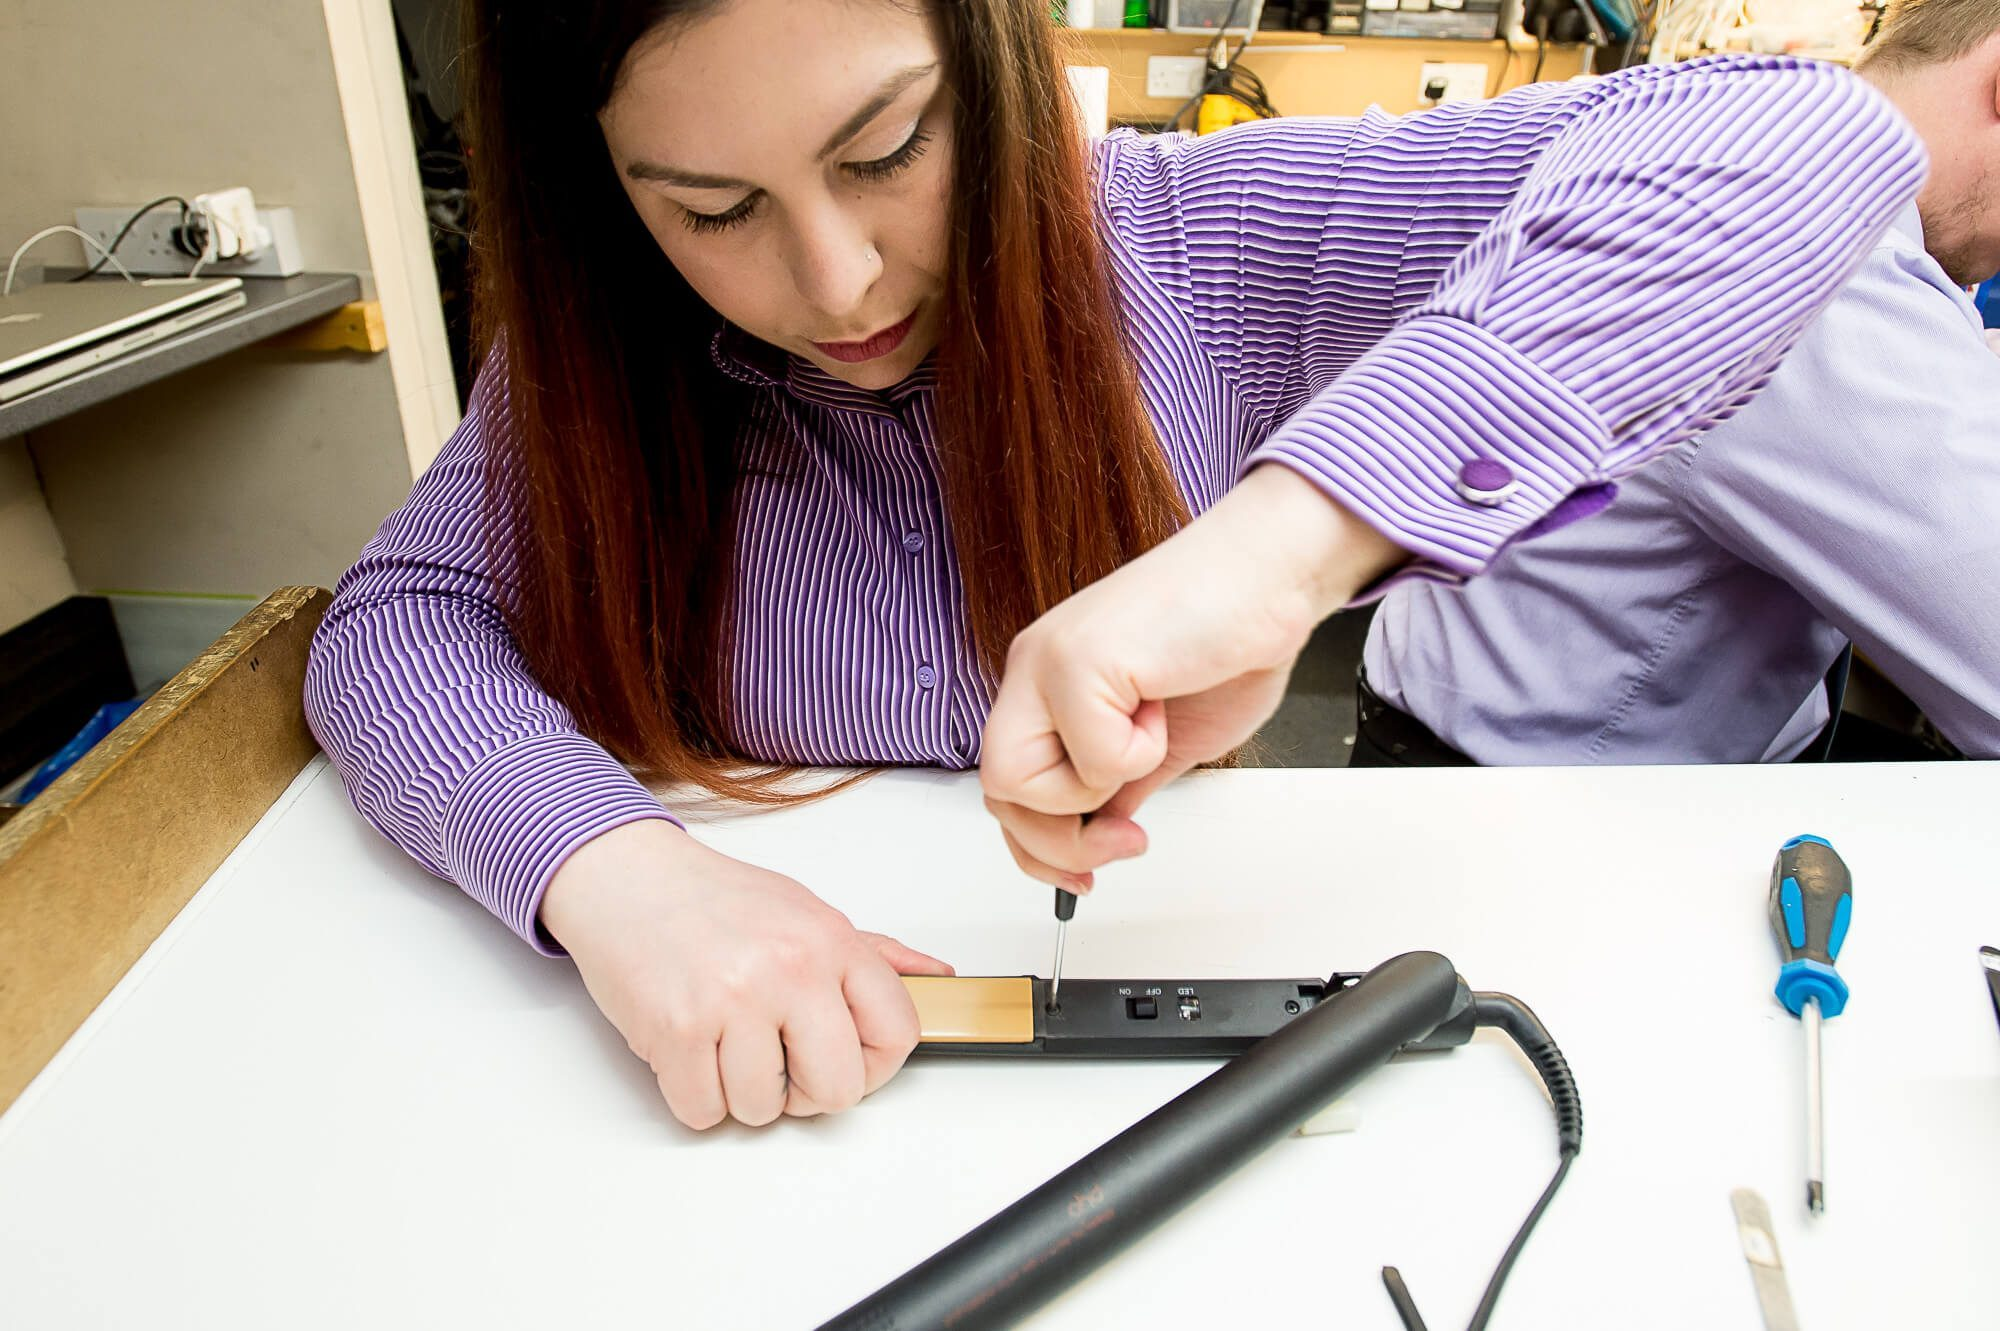 A SimplyFixIt technician fixing a set of GHD hair straighteners.